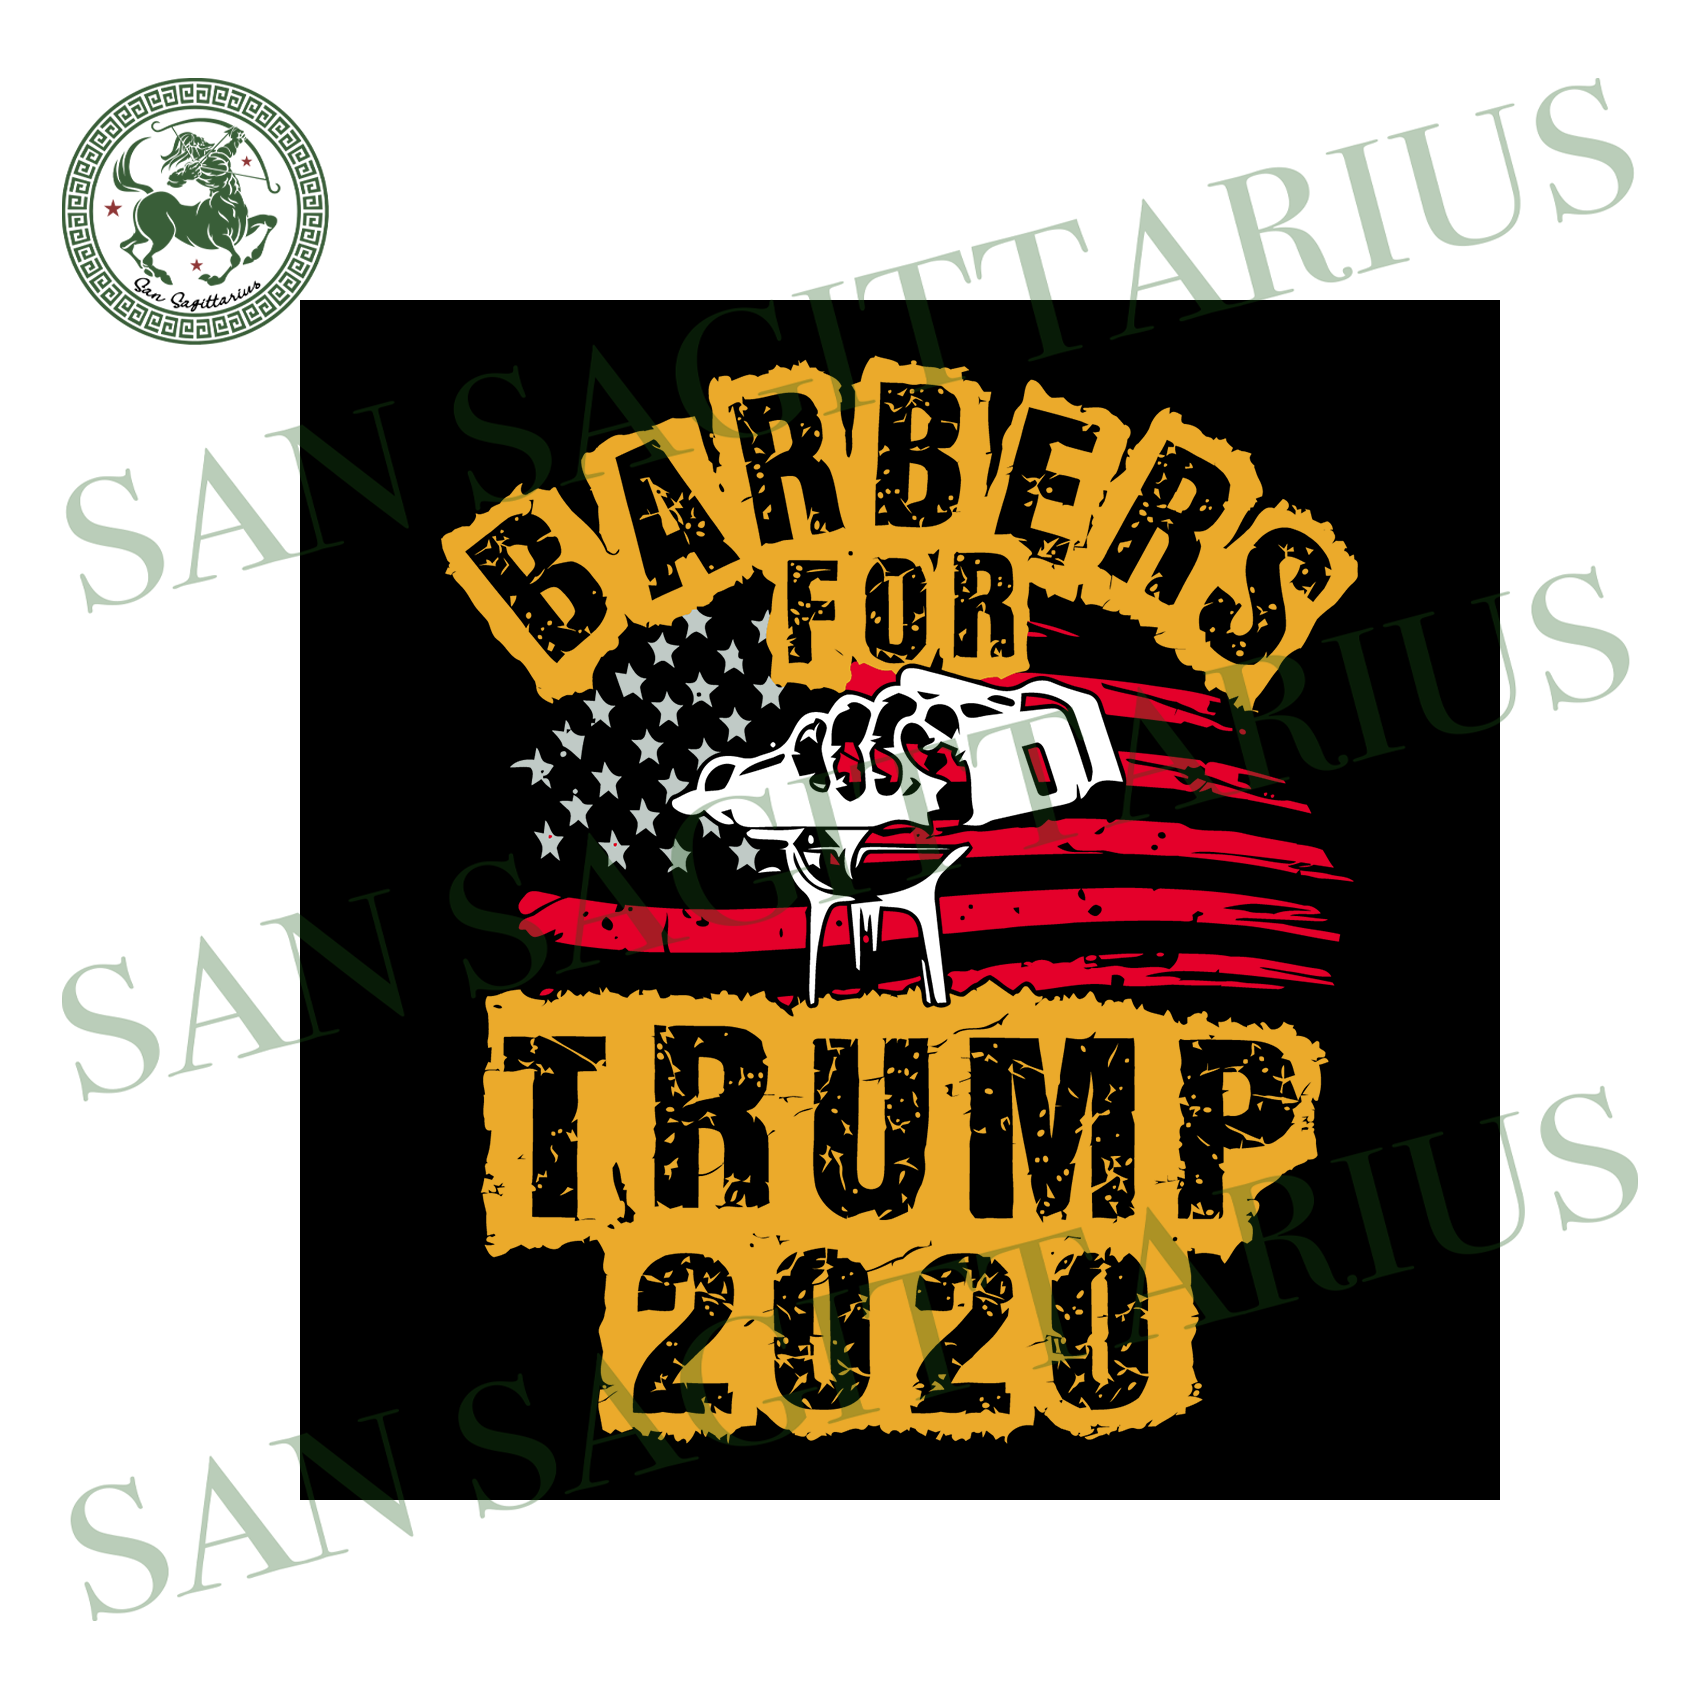 Barbers For Trump Svg,Barbers For Trump Shirt ,Conservative Barber Svg, Trump 2020 Election Keep America Great Republican Shirt ,Trump Rally Shirt, Pro Trump Svg